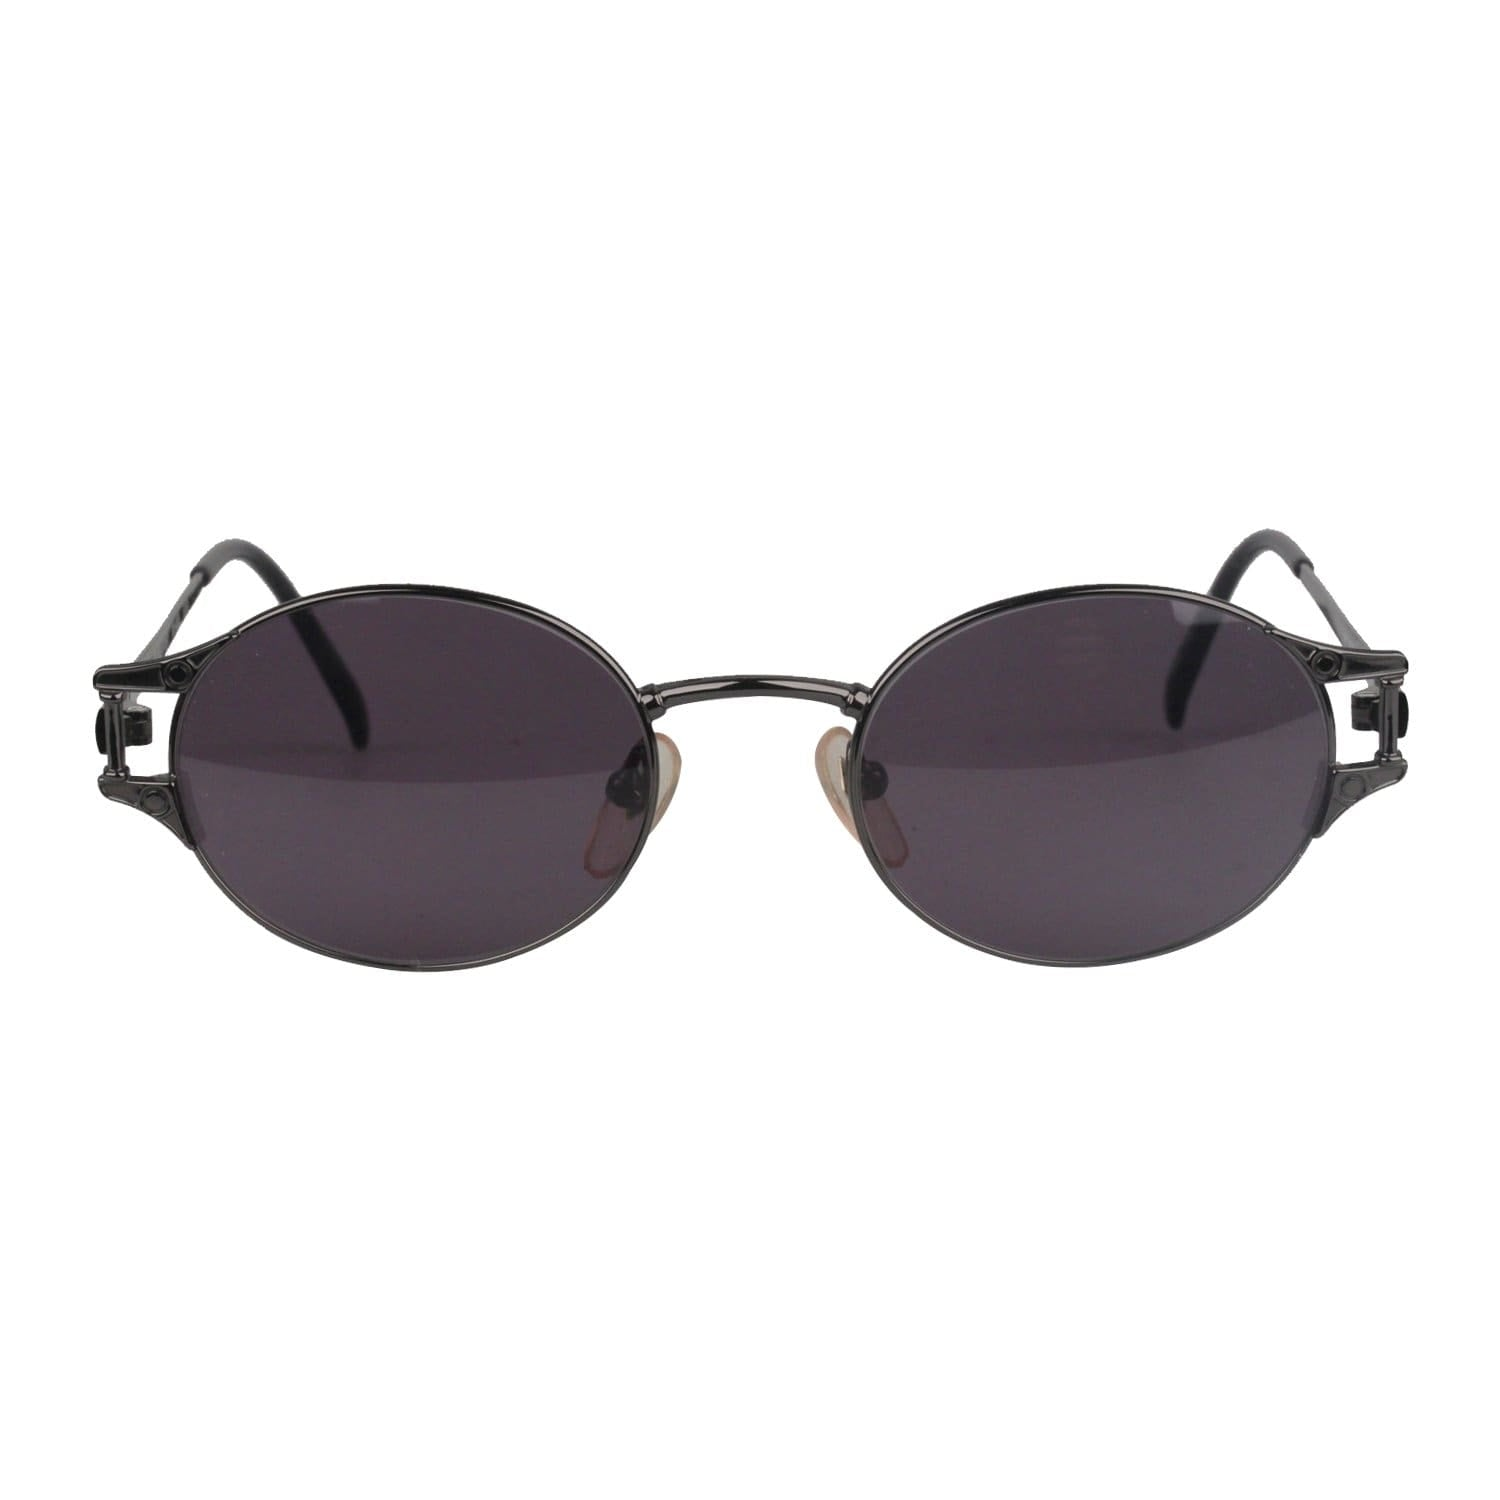 3ed322de81 Jean Paul Gaultier Vintage Sunglasses Junior 58-4171 at ...